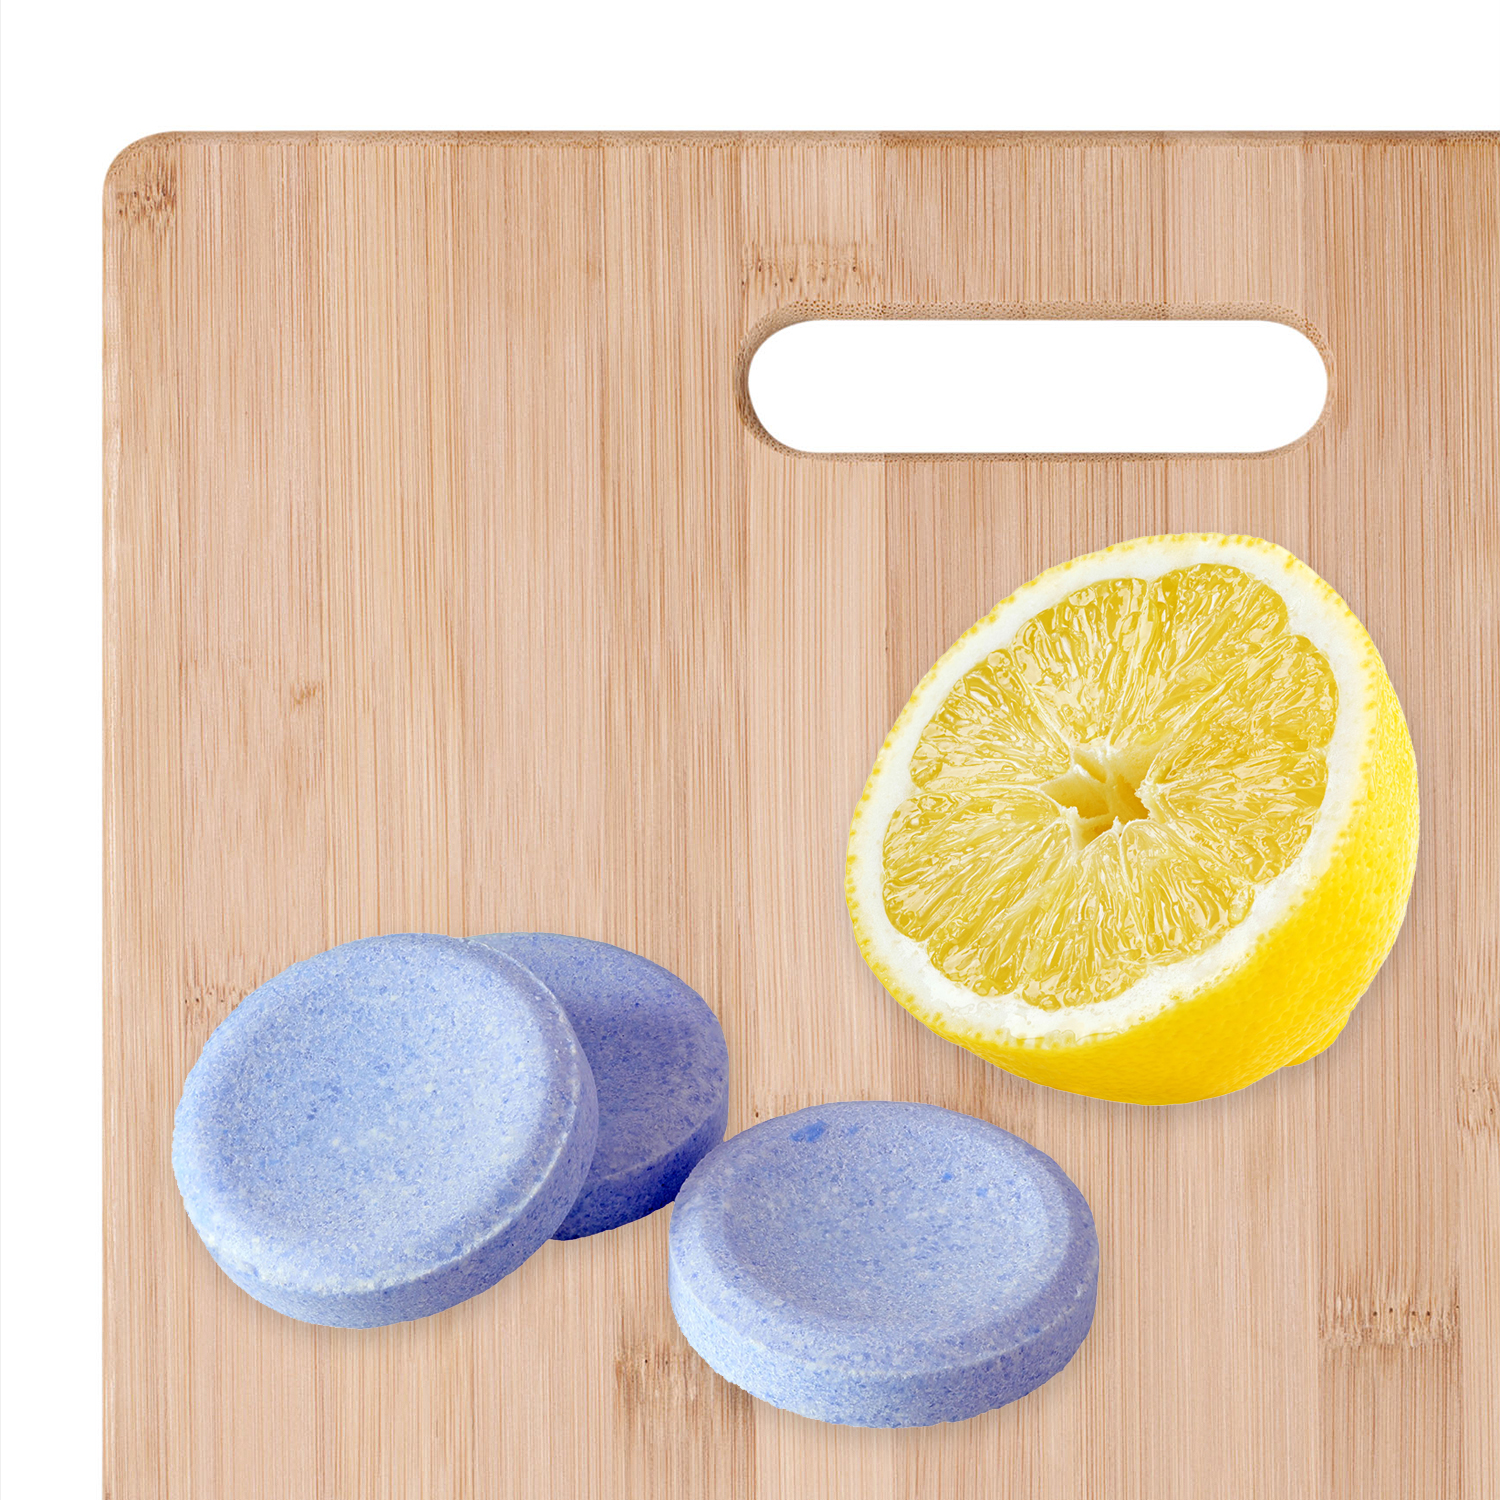 cutting board with lemon and tablets